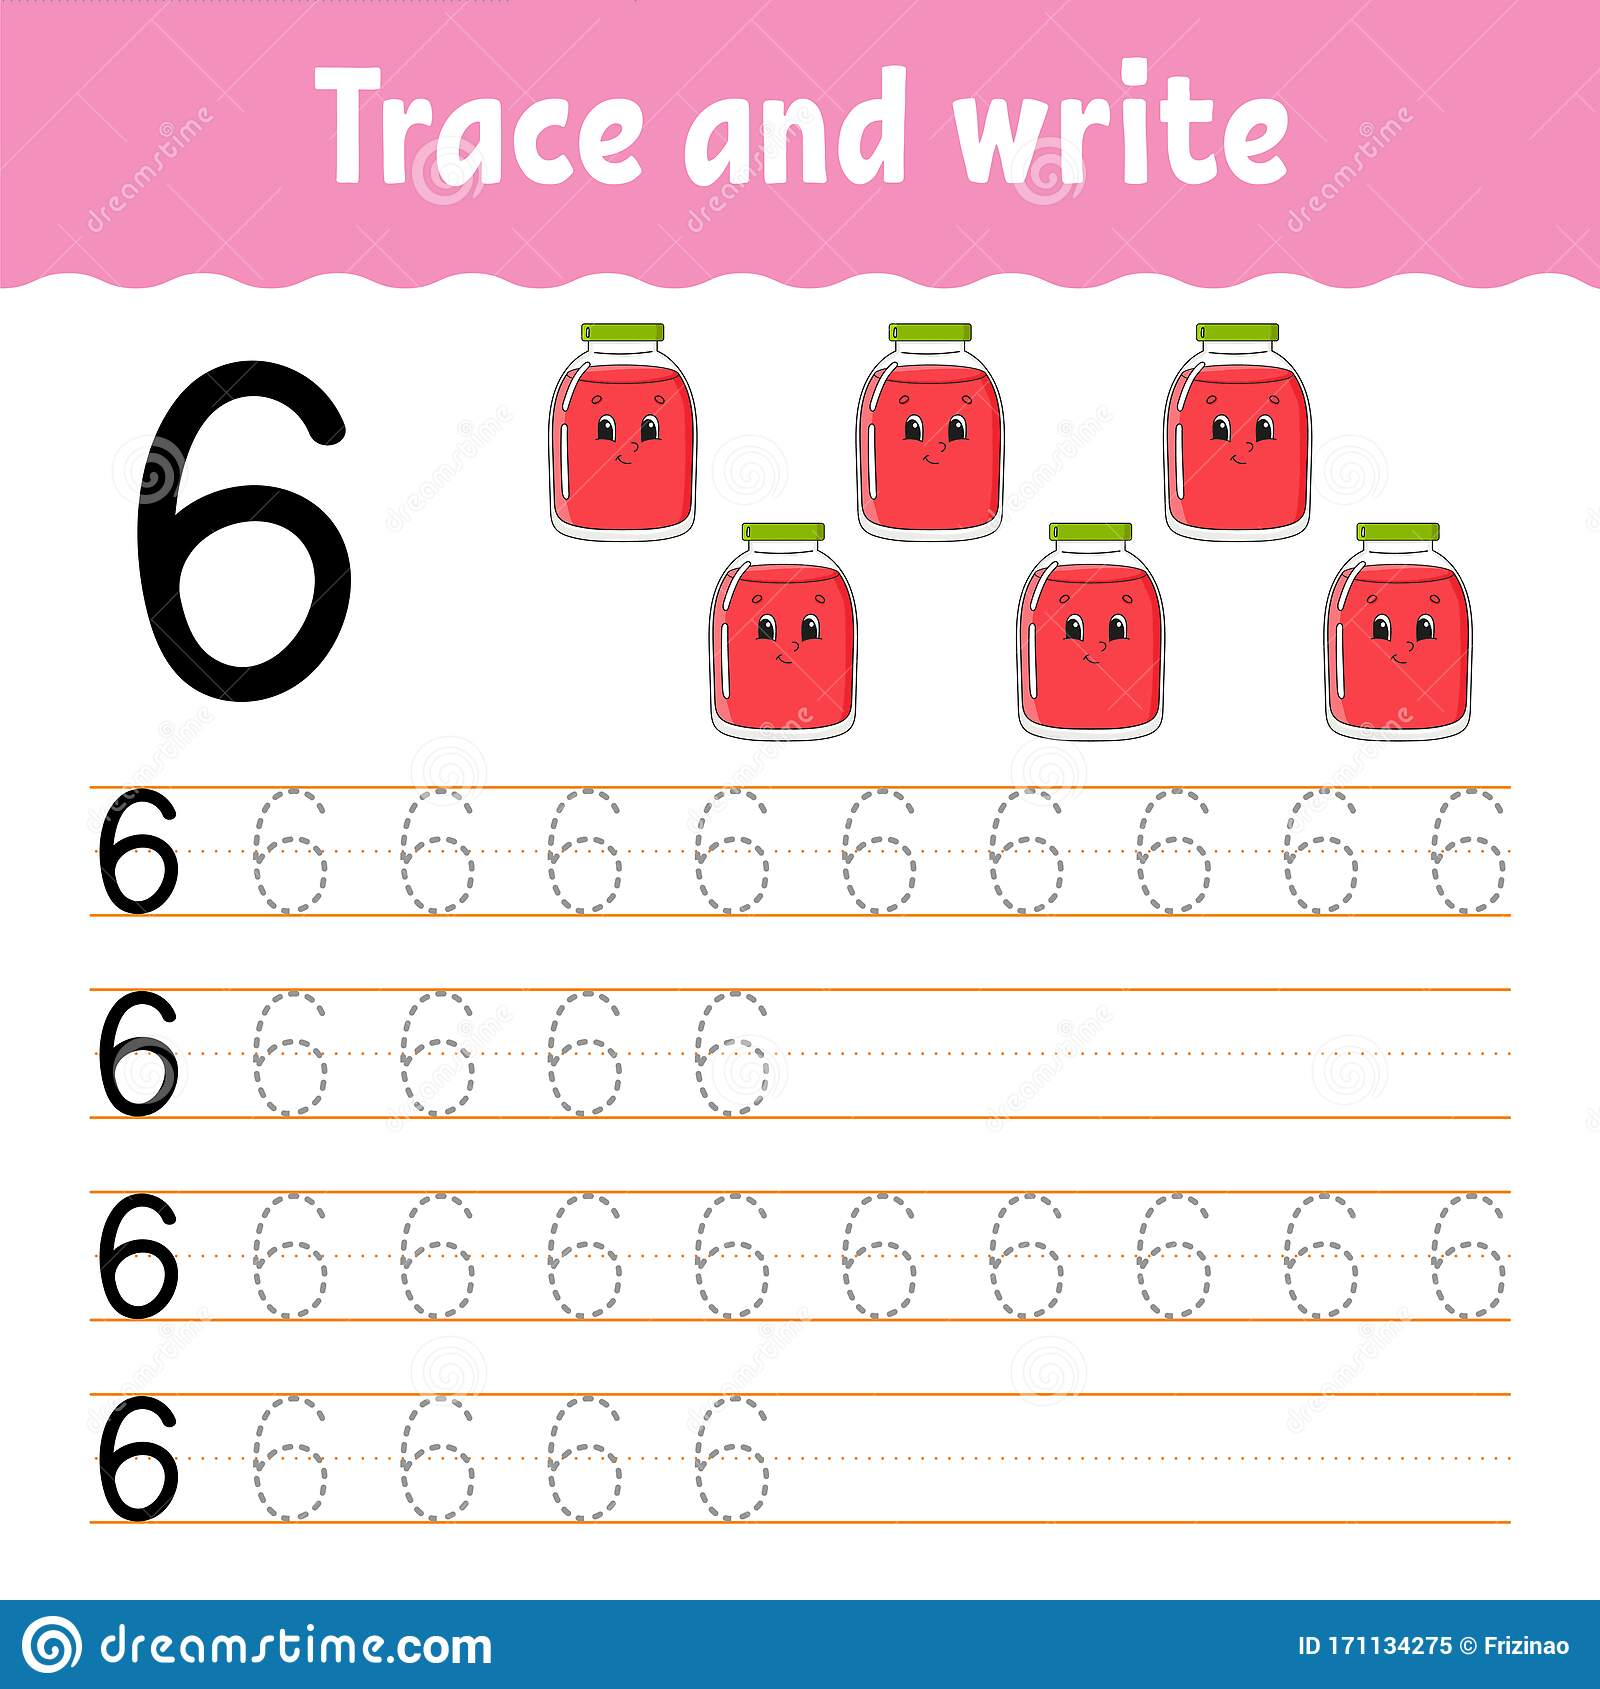 Number 6 Trace And Write Handwriting Practice Learning